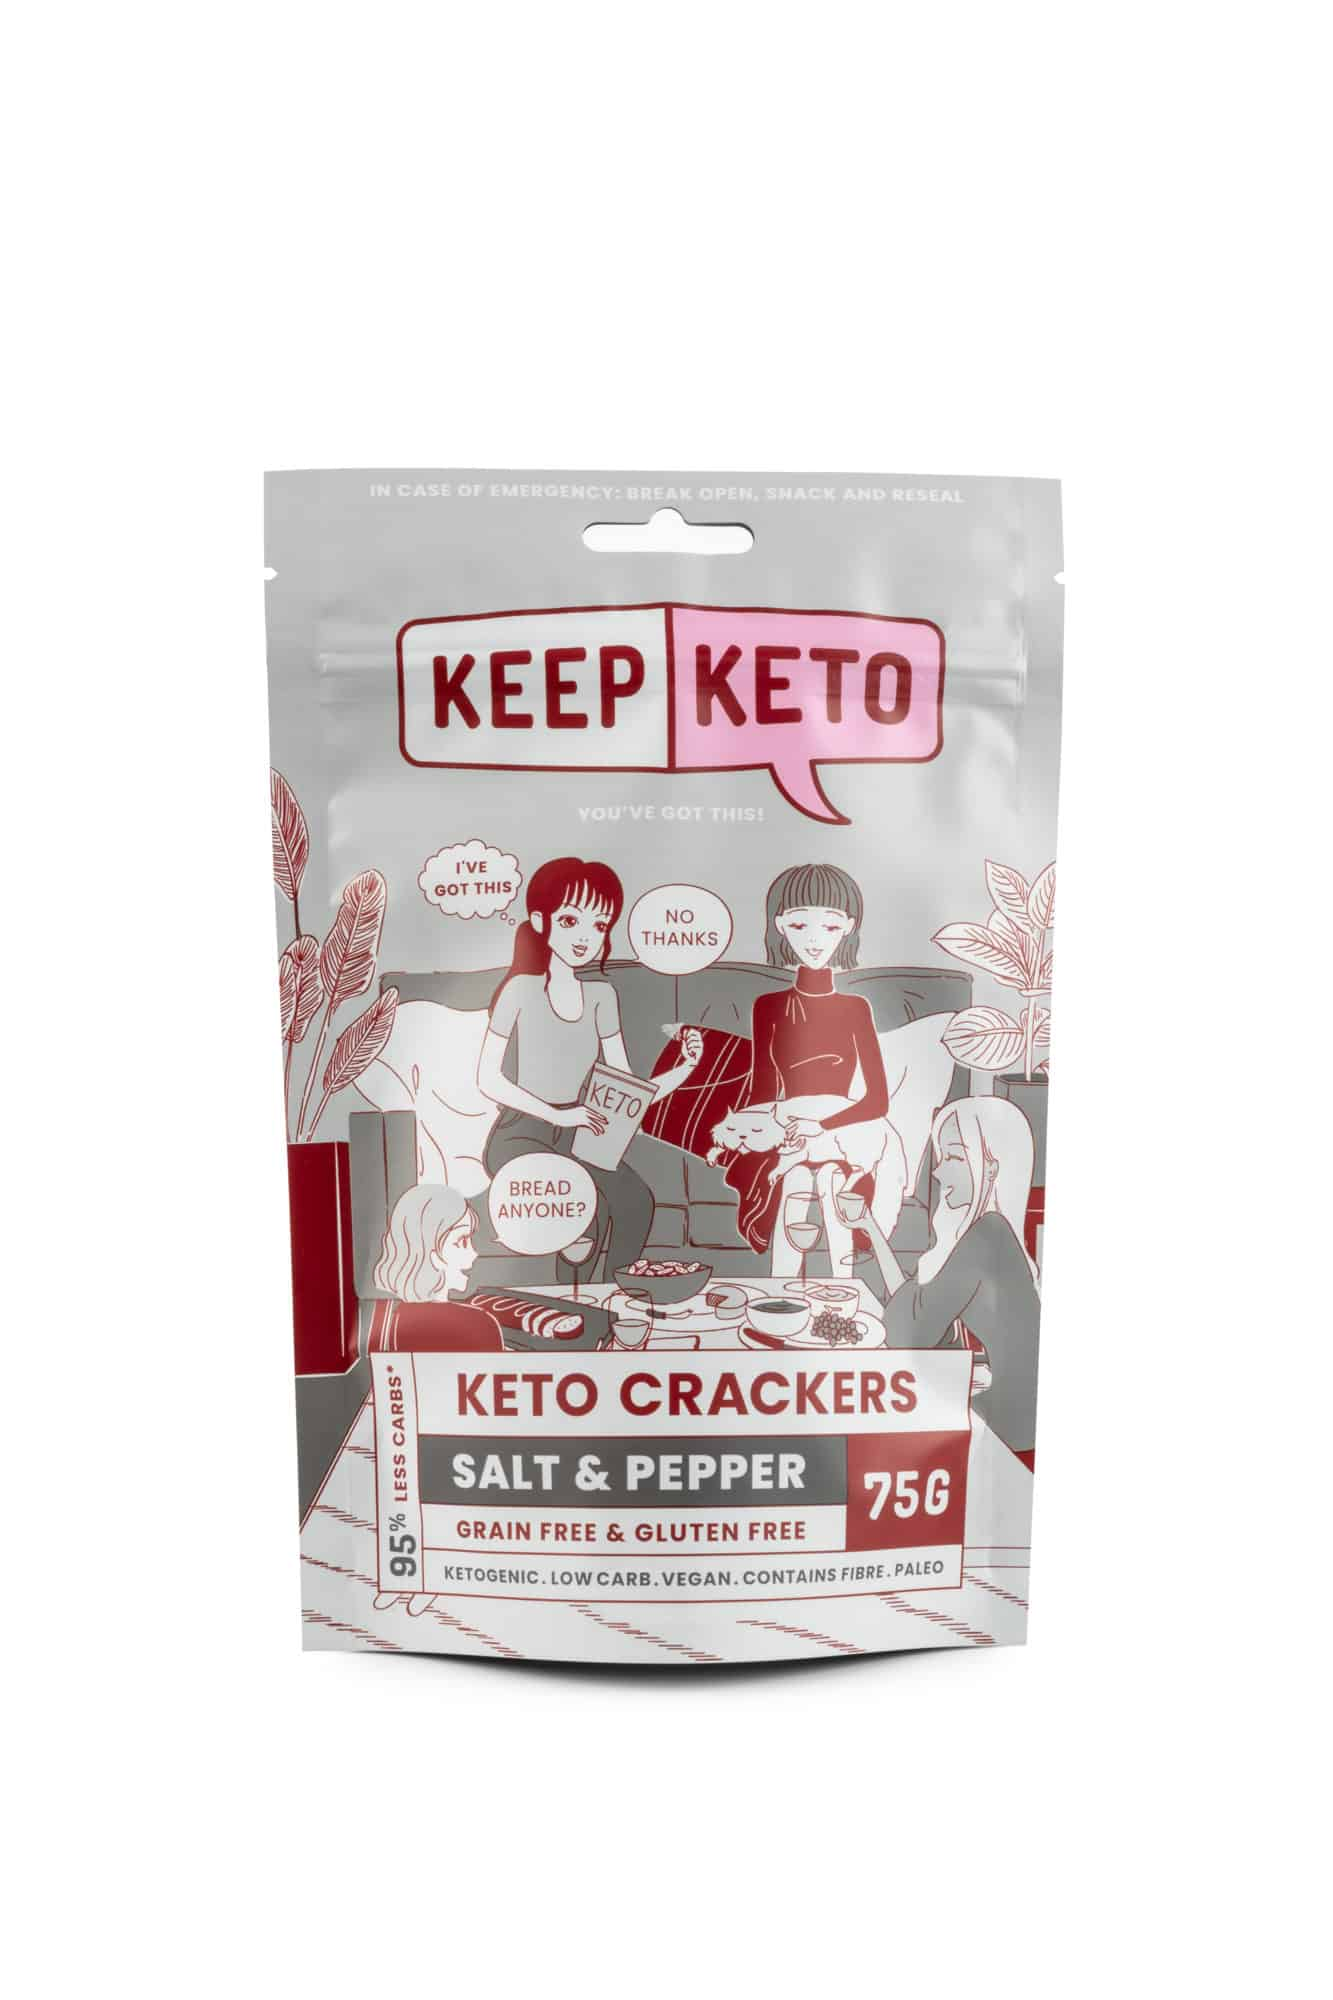 salt & pepper keto crackers